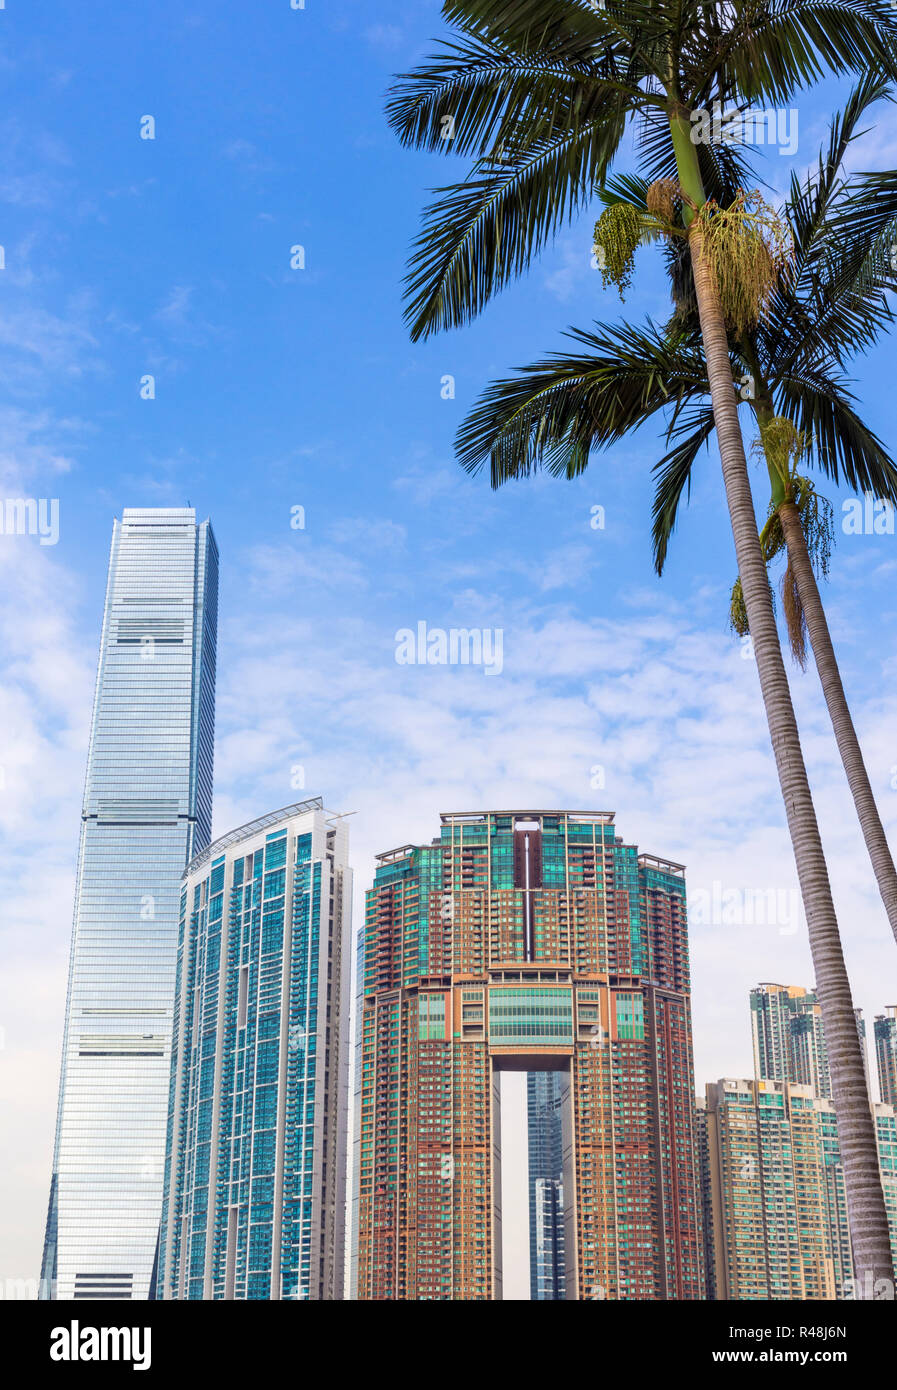 Detail of the Hong Kong development of Union Square including the International Commerce Centre, The Harbourside and The Arch, West Kowloon, Hong Kong - Stock Image